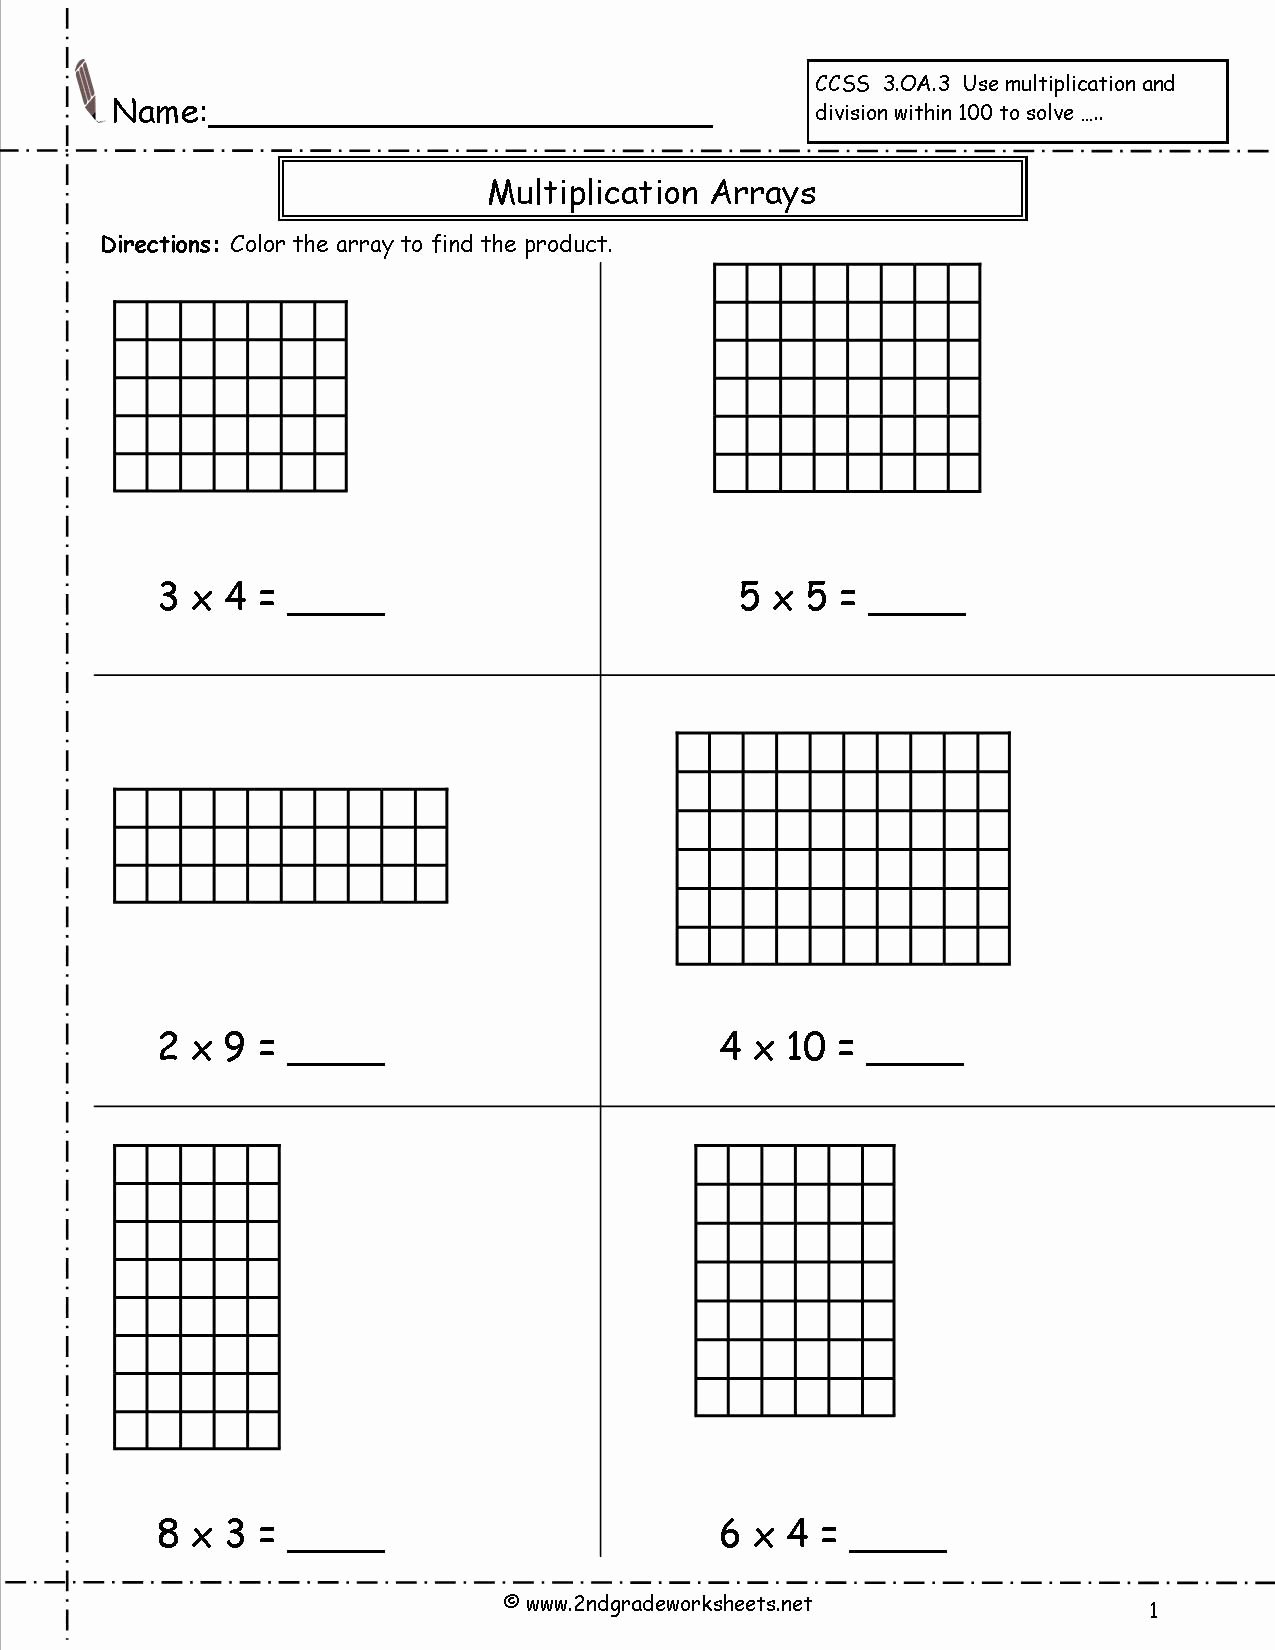 5th Grade area Model Multiplication Worksheets Lovely Multiplication Arrays Worksheets